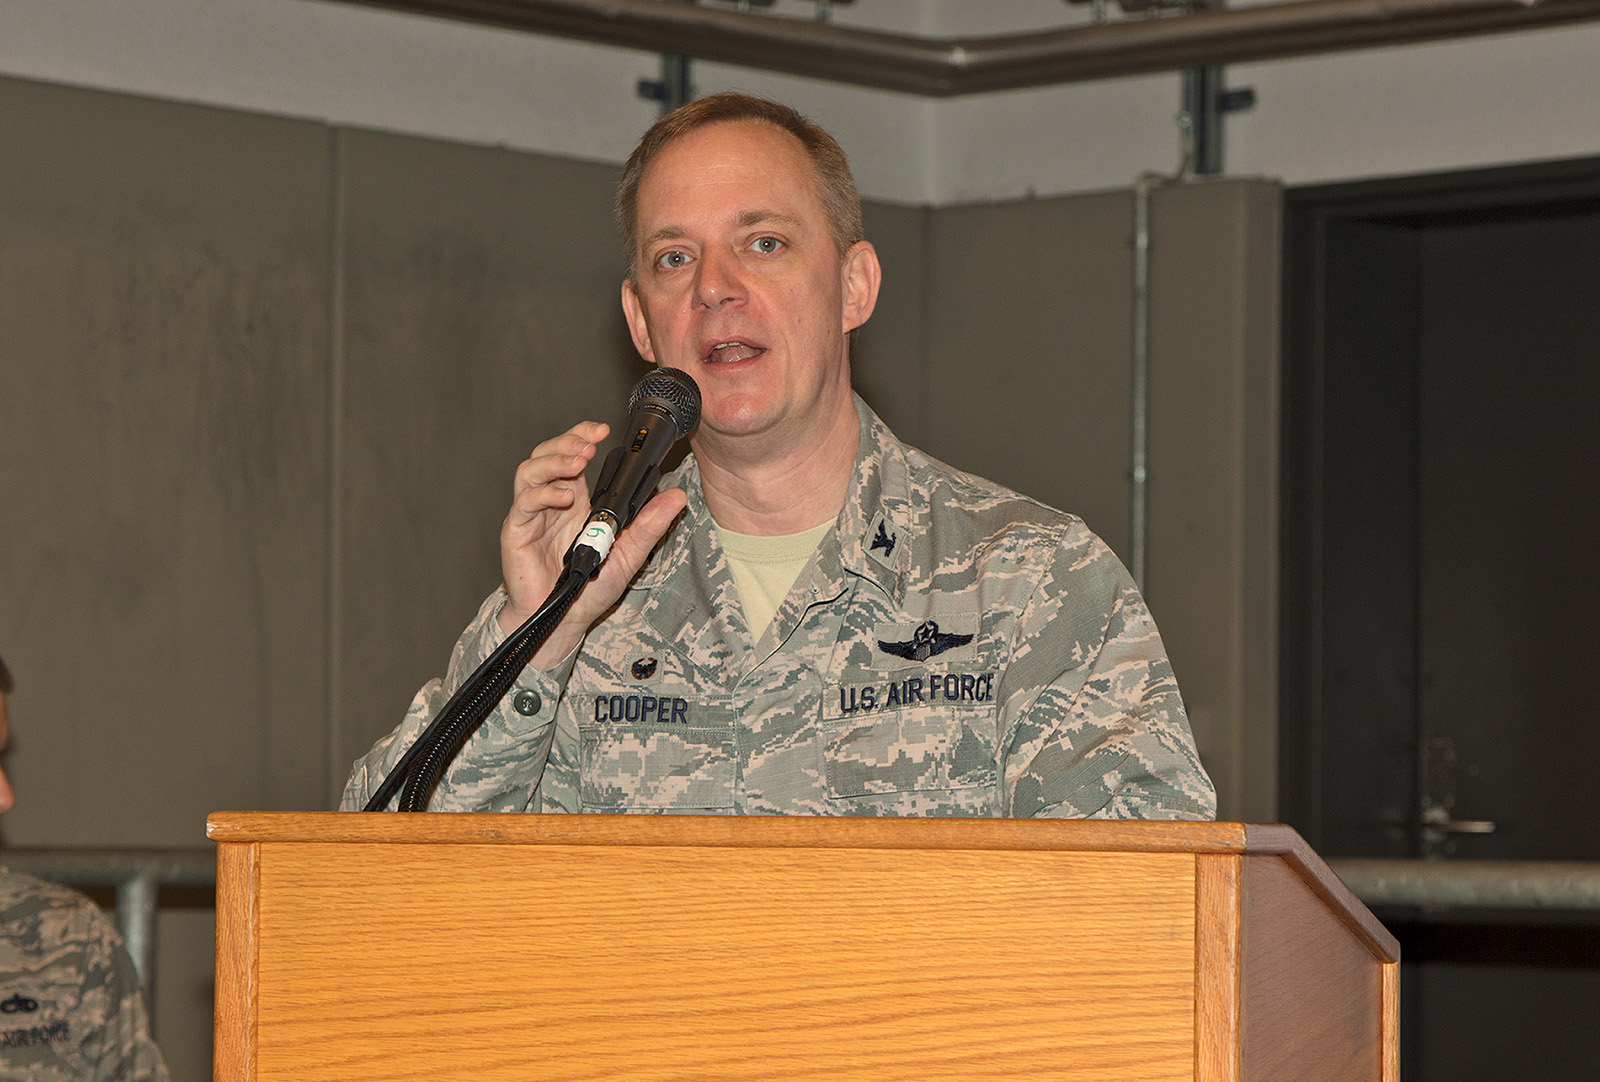 Col. Thomas Cooper, Kommandeur der 521st Air Mobility Operations Wing.